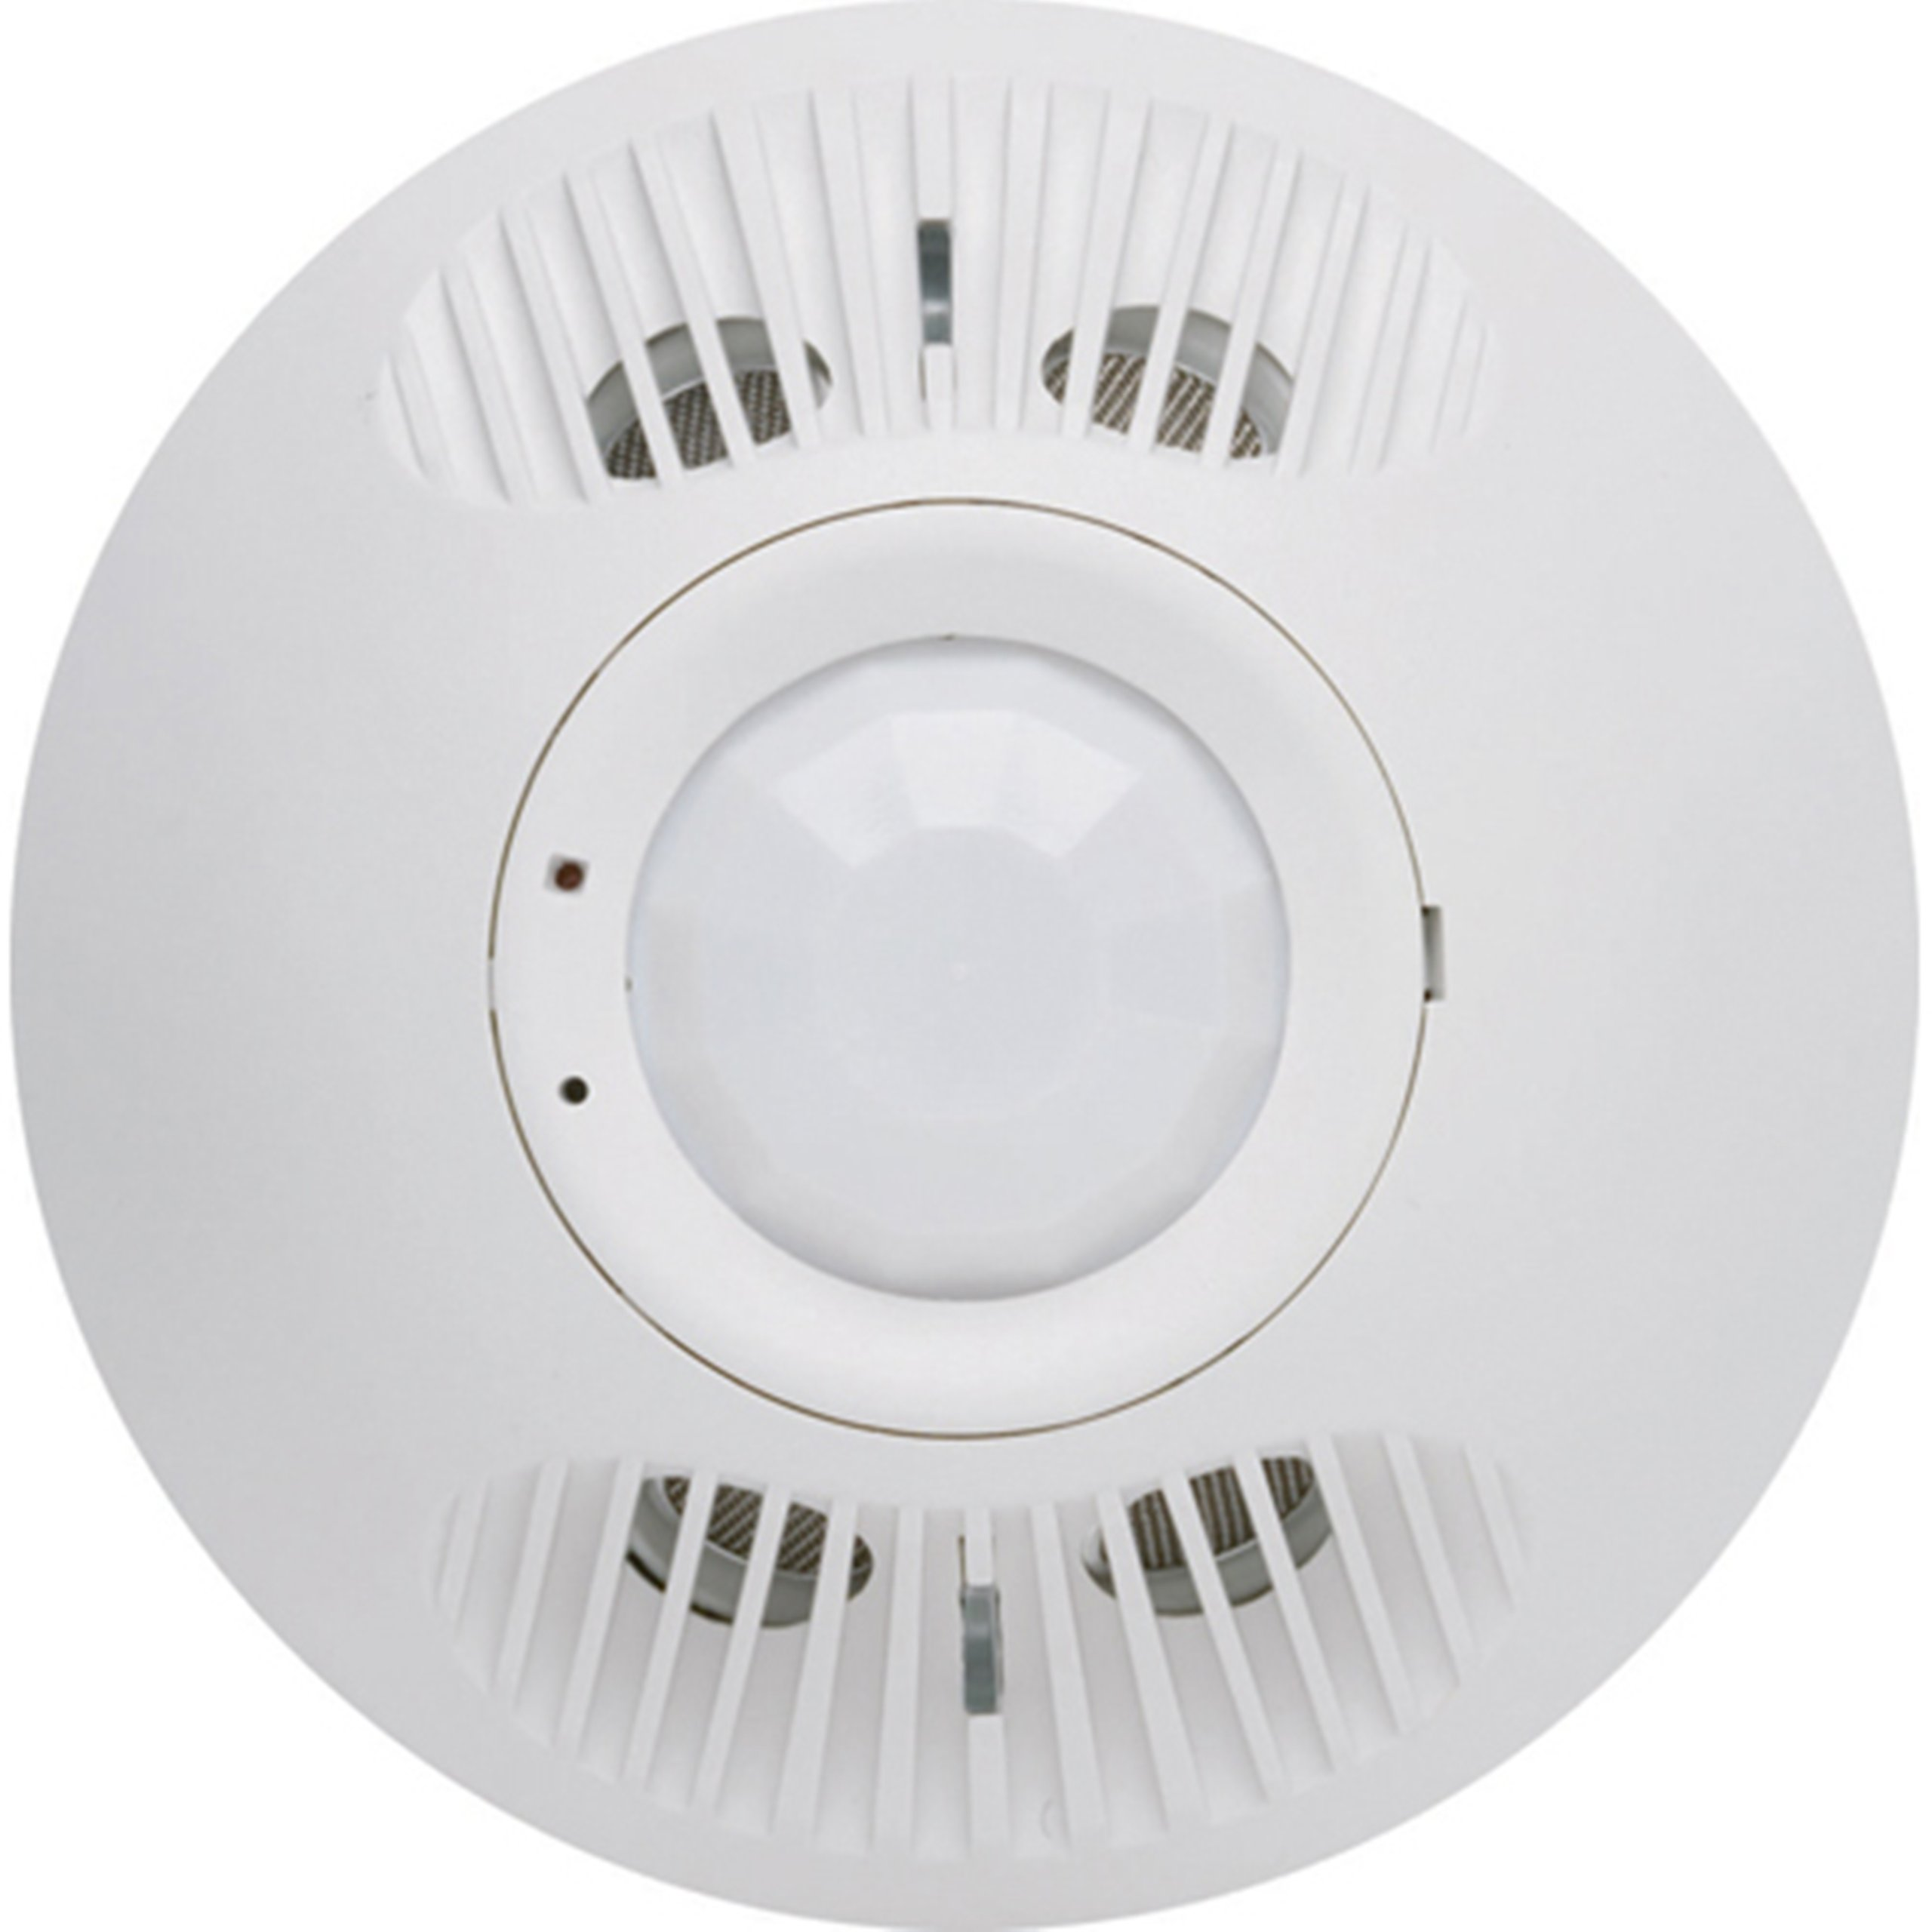 Hubbell Building Automation OMNIDT500 Digital Passive Infrared and Ultrasonic Ceiling Occupancy Sensor, 500-Square-foot Range